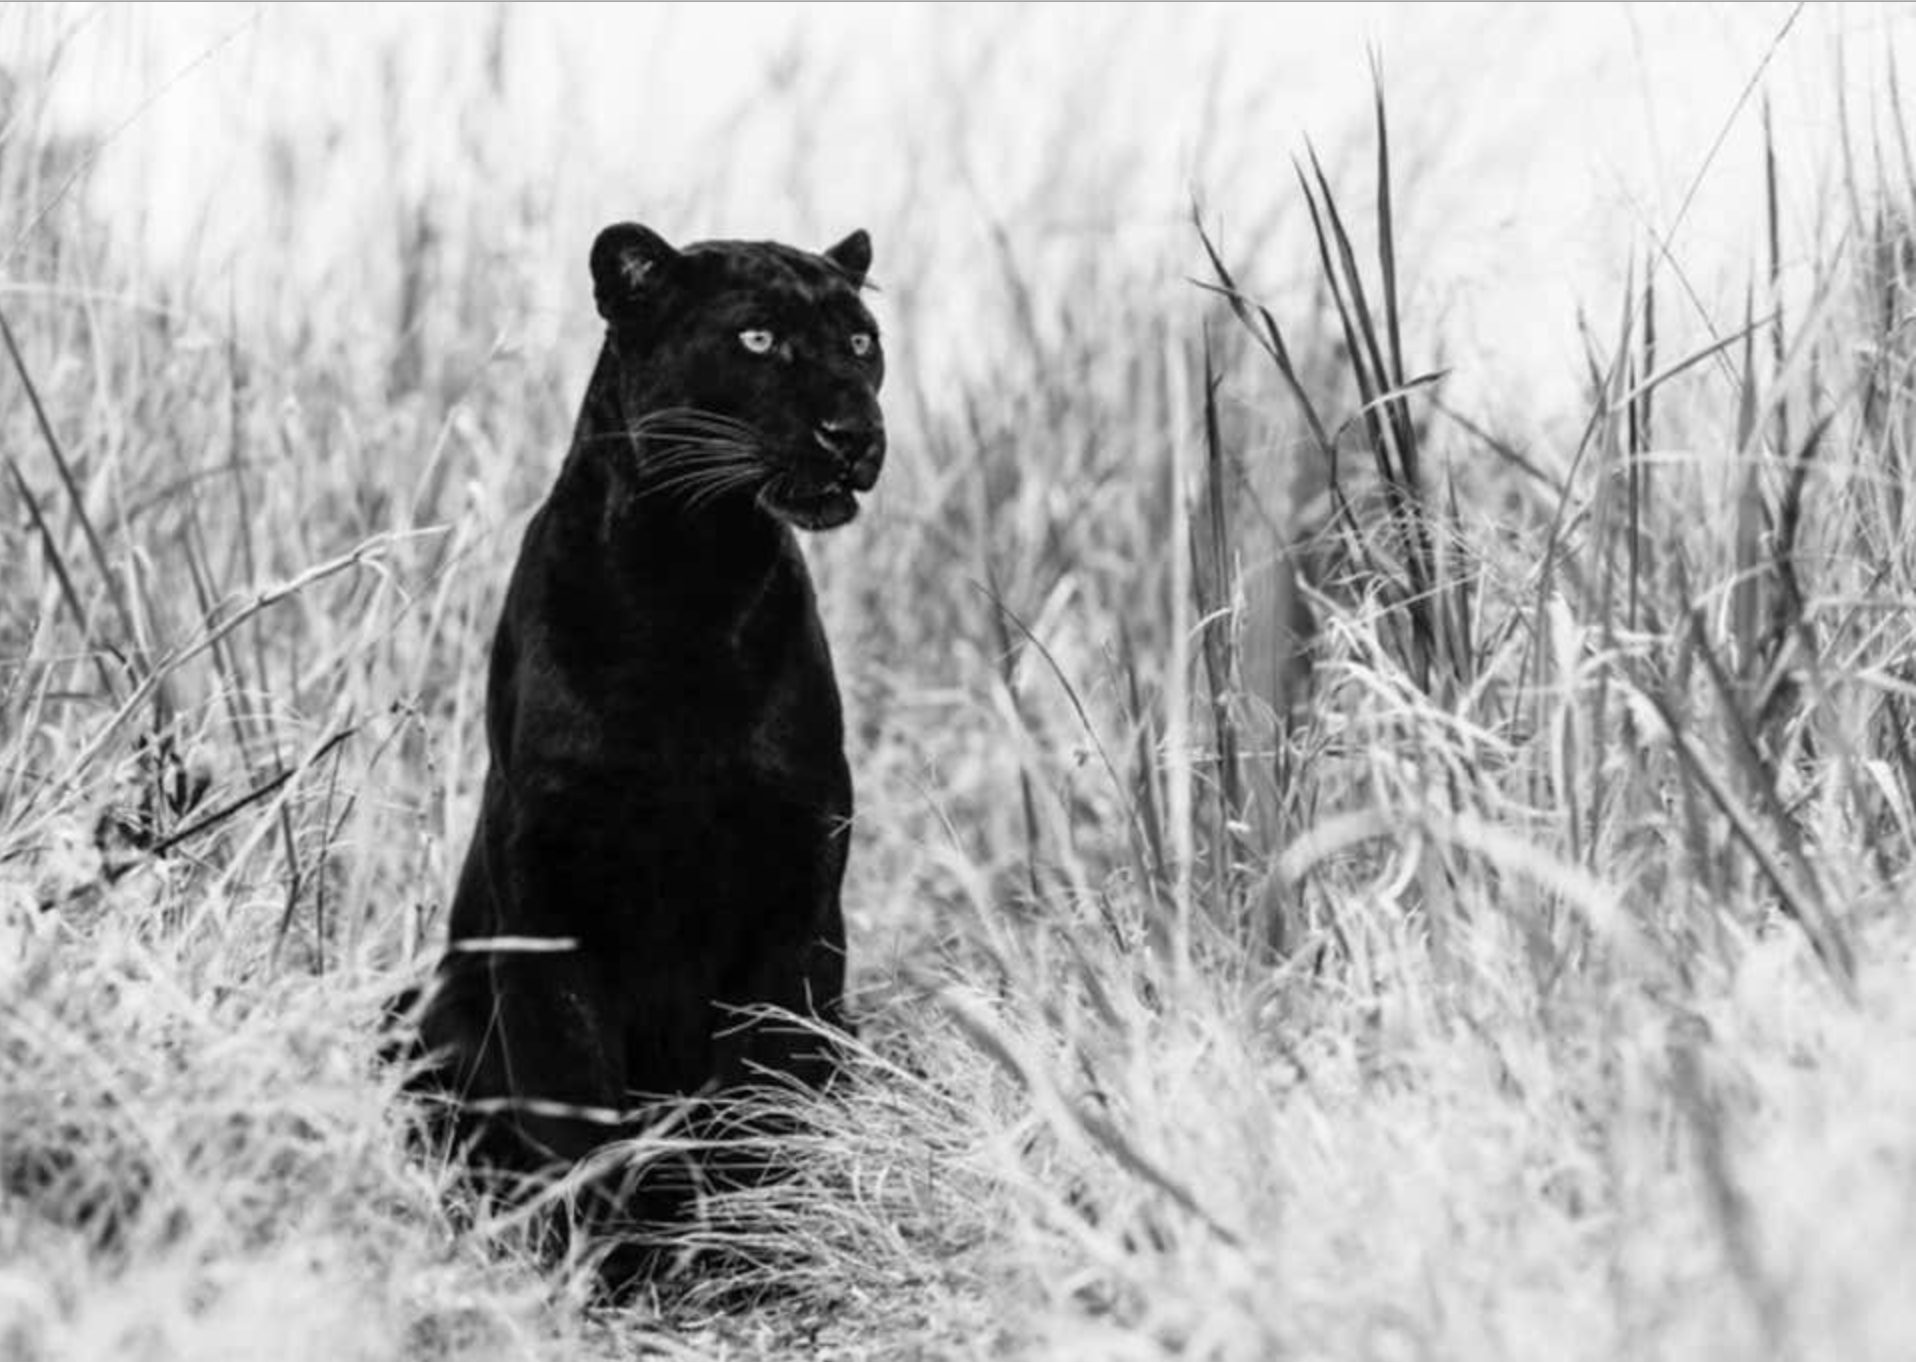 Bagheera, South Africa